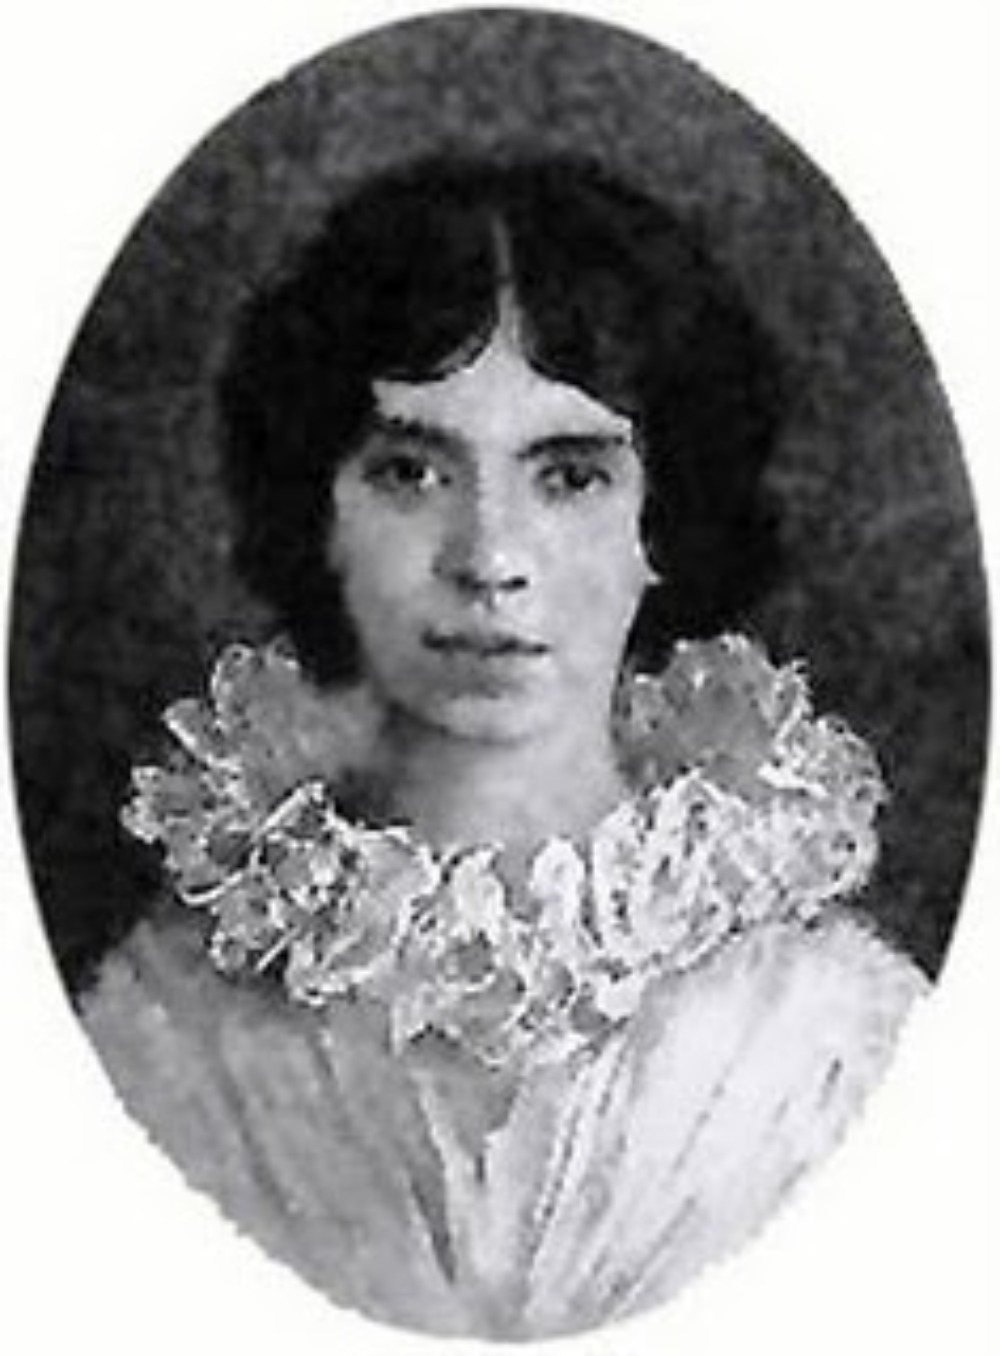 a biography of emily dickinson Emily dickinson is credited as poet and author, the poems of emily dickinson, emily dickinson, also known as emily elizabeth dickinson born december 10, 1830 in amherst, massachusetts, united states - died may 15, 1886 was an american.